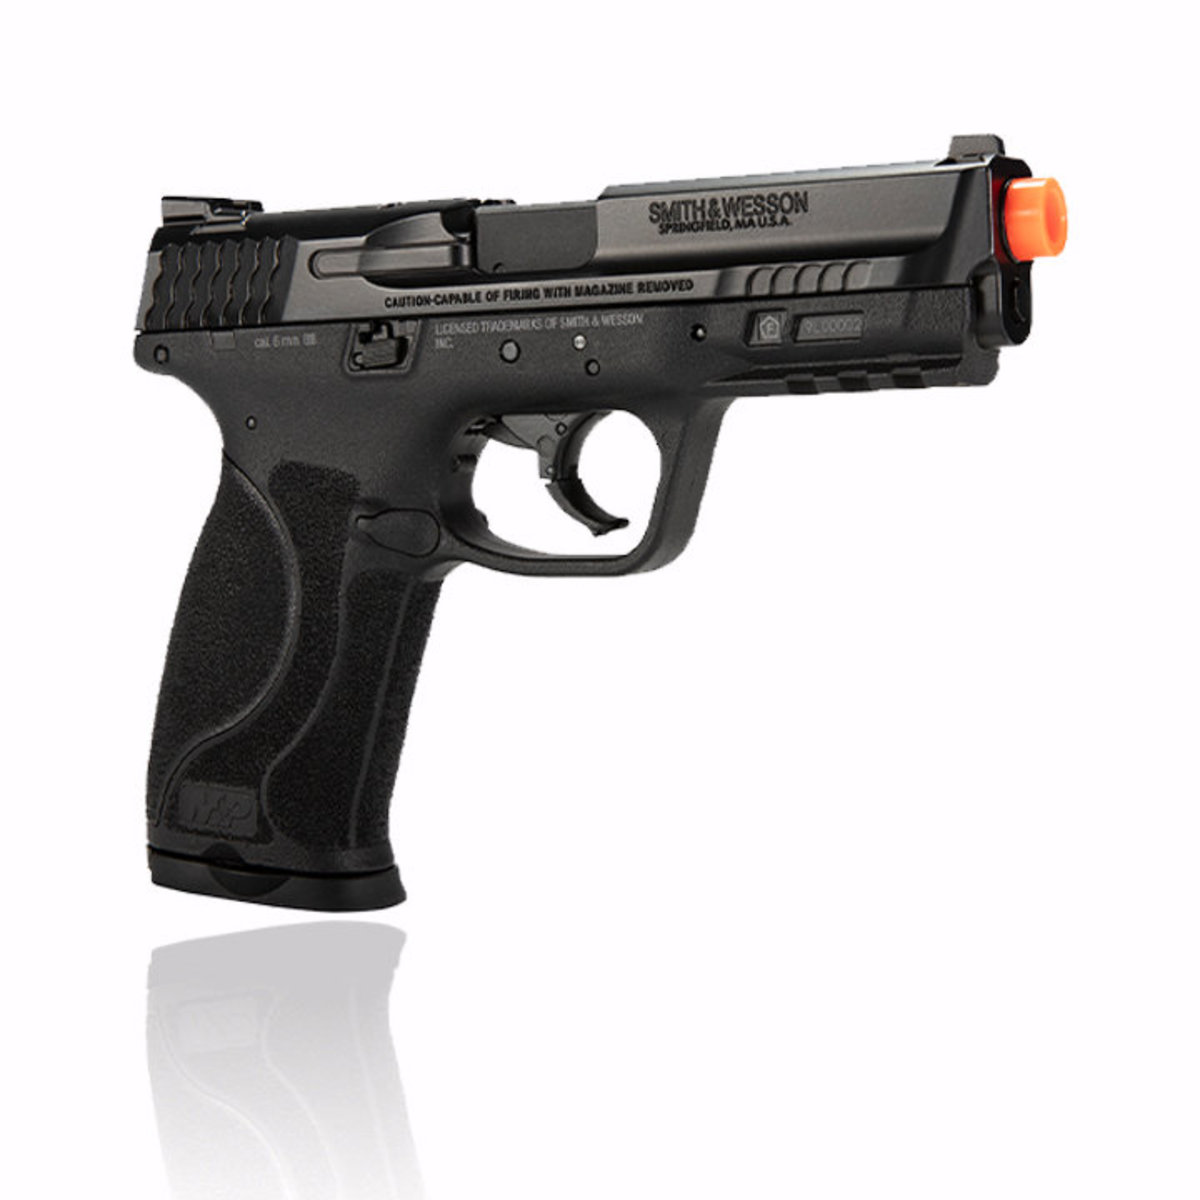 View larger image of Umarex S&W M&P9 M2.0 CO2 Half-Blowback Airsoft Pistol